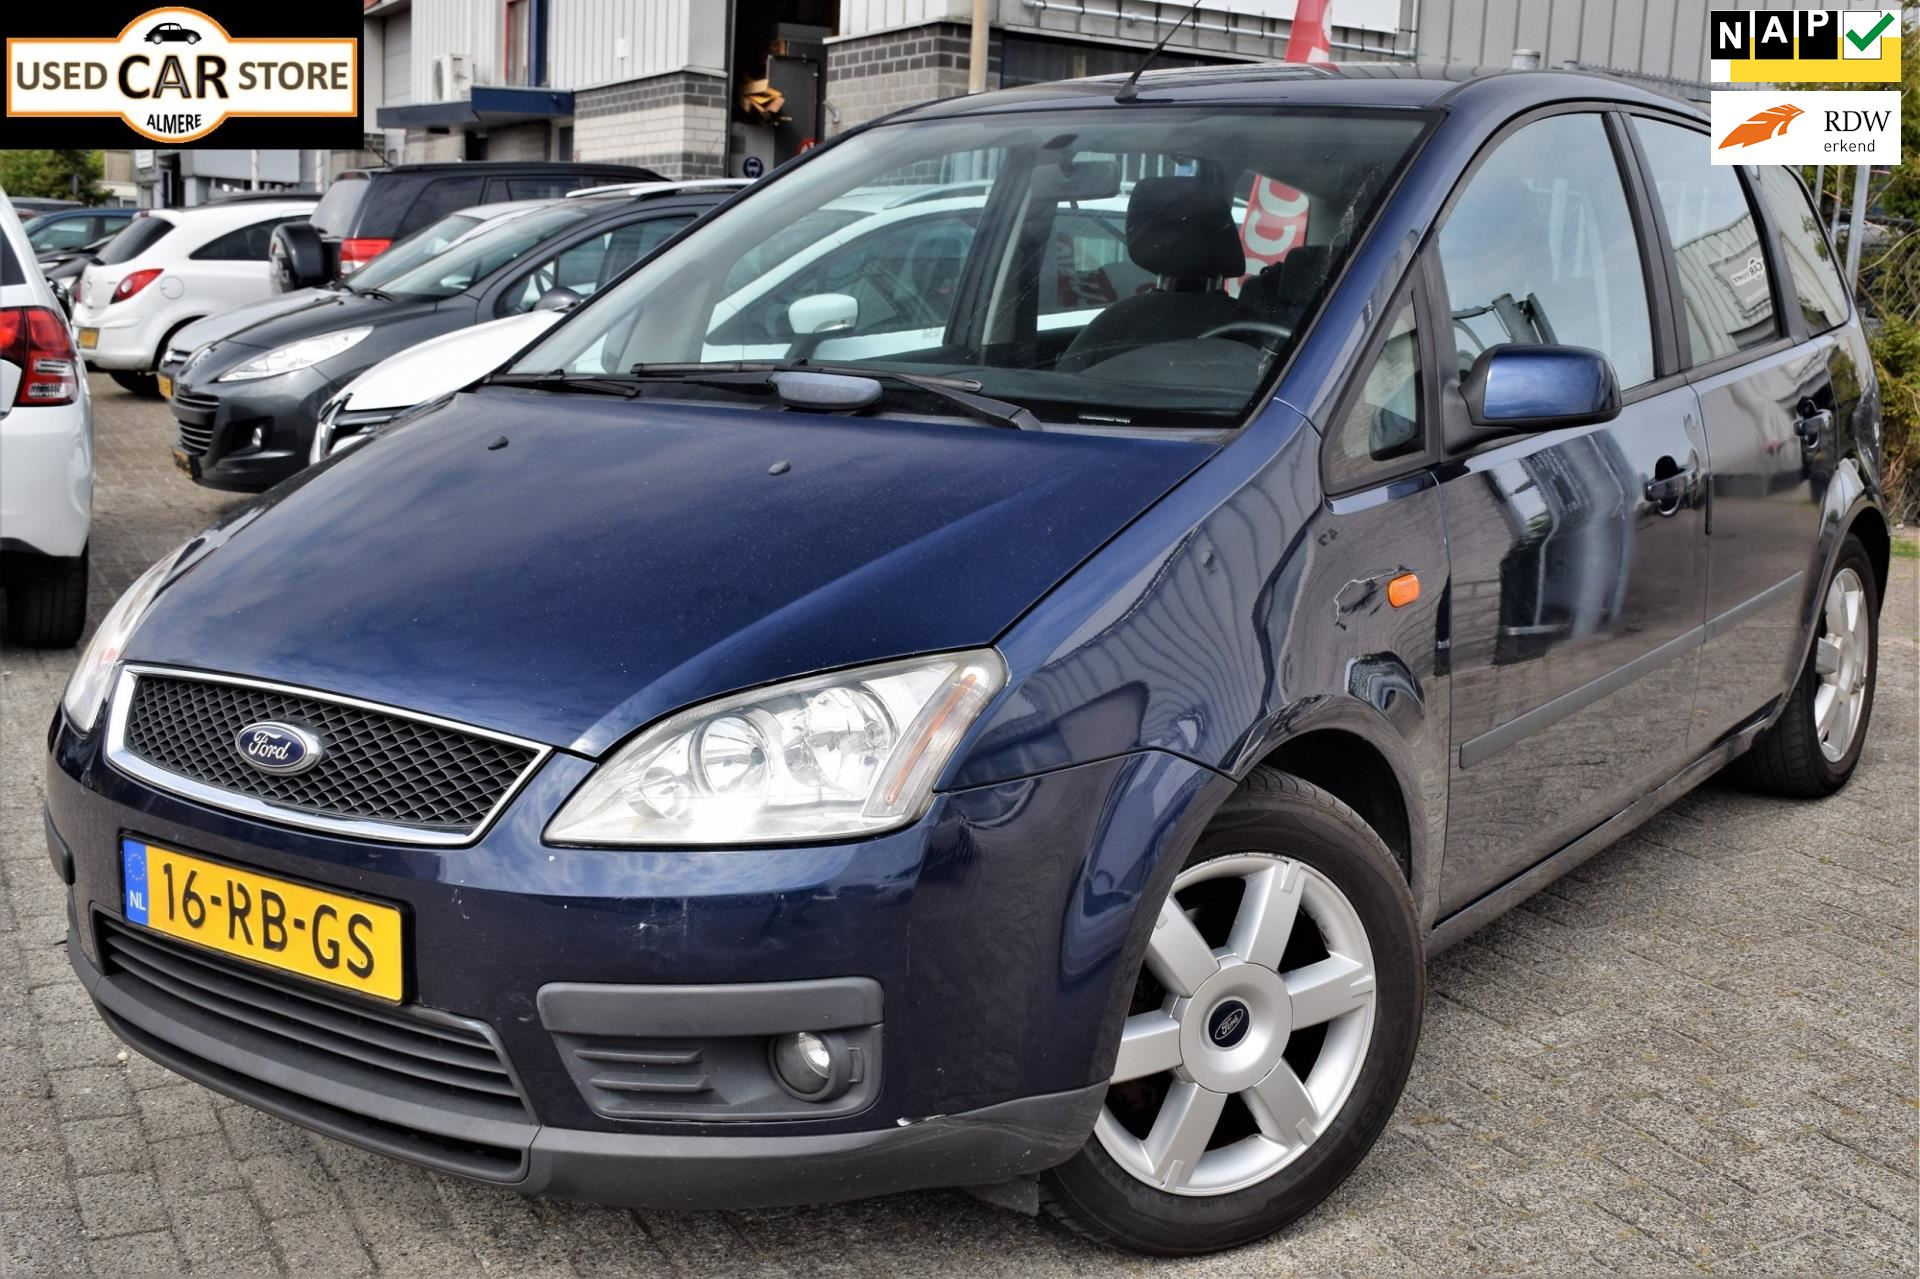 Ford Focus C-Max occasion - Used Car Store Almere